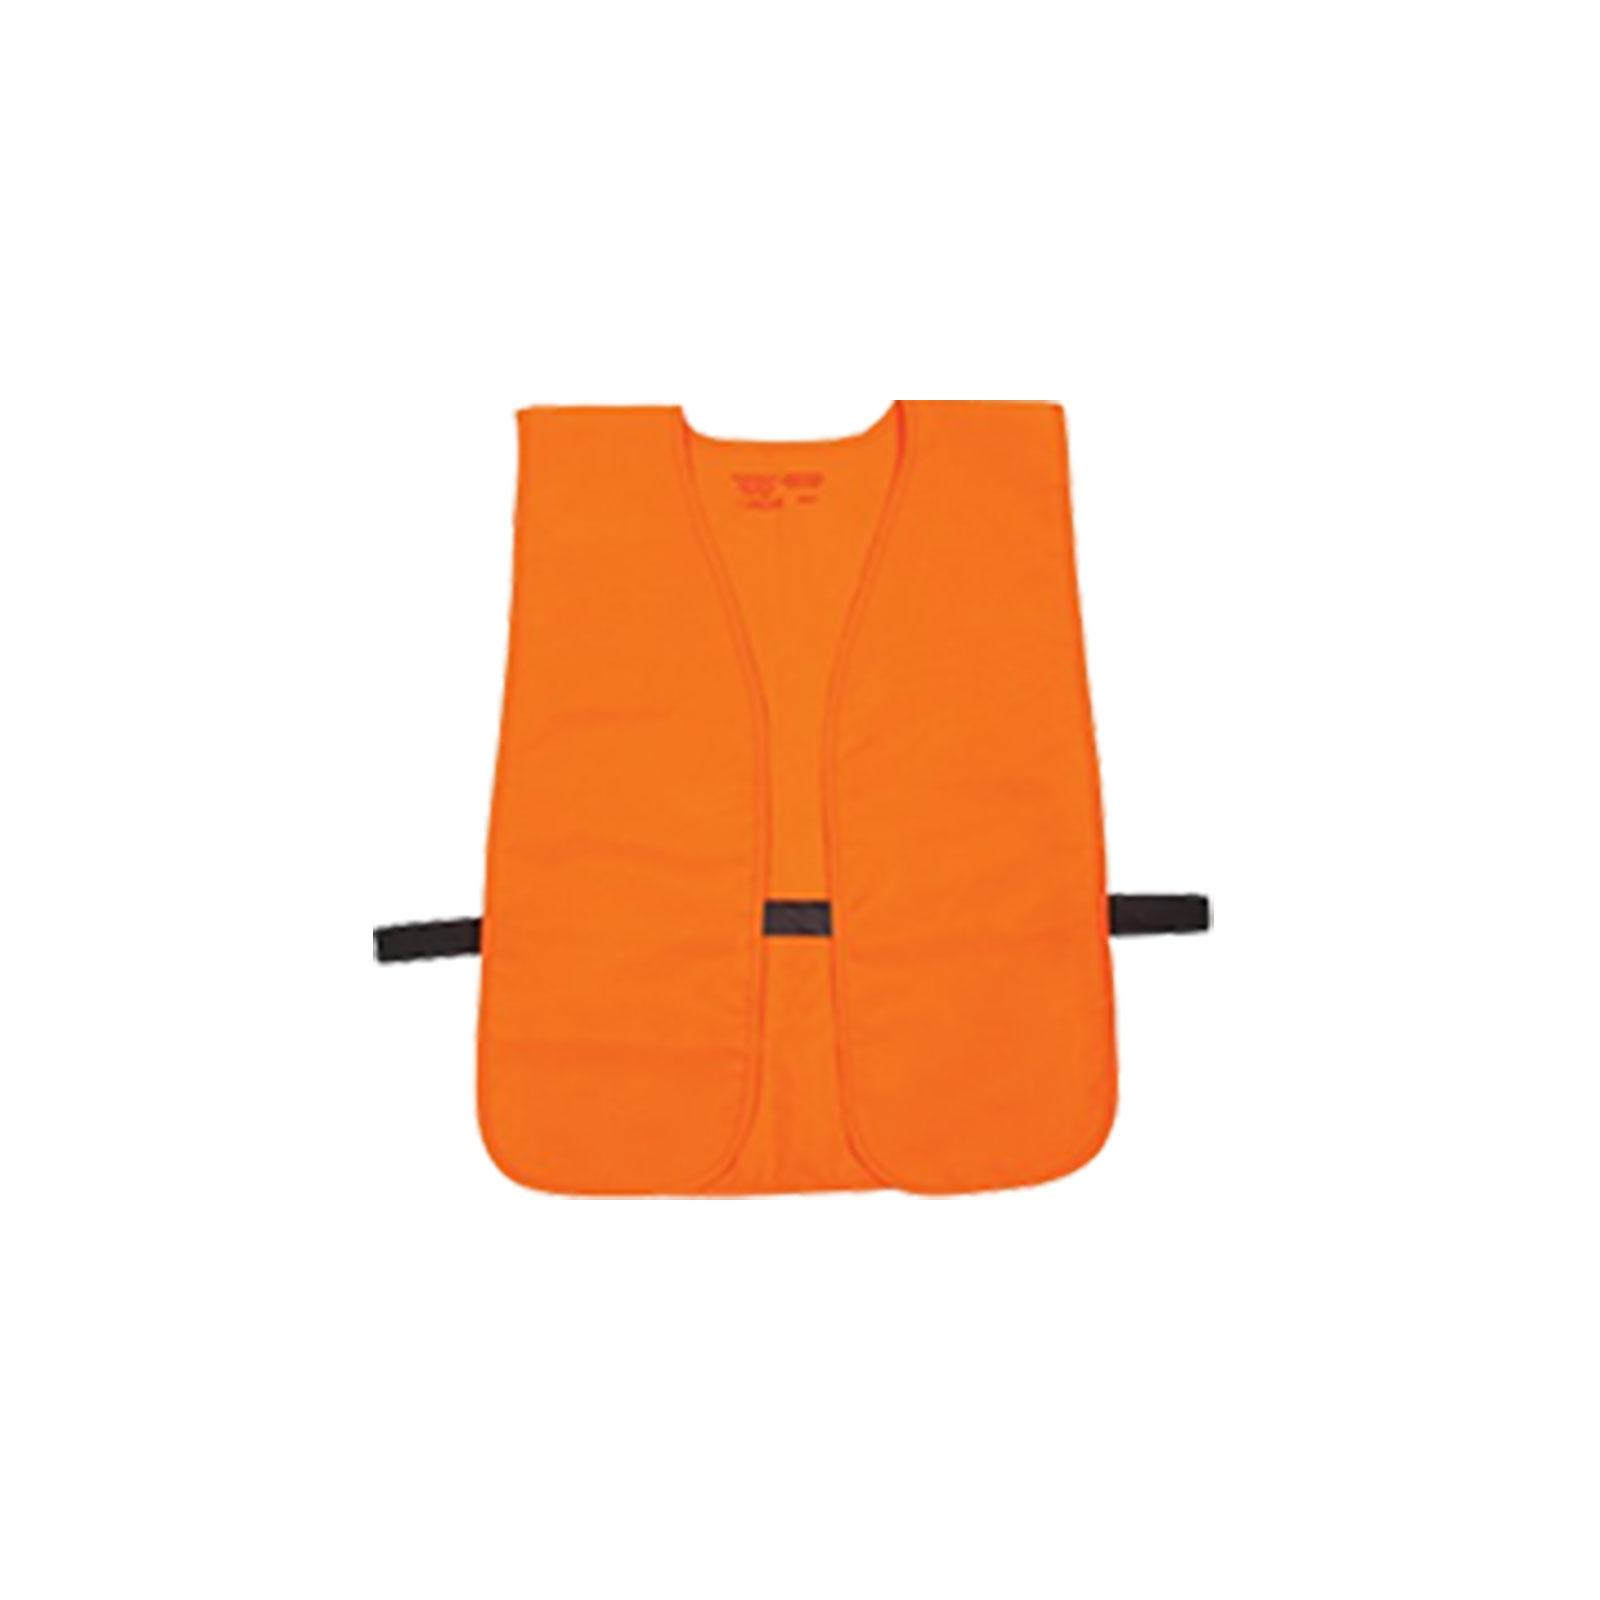 Remington BZ Safety Vest by ALLEN CO INC